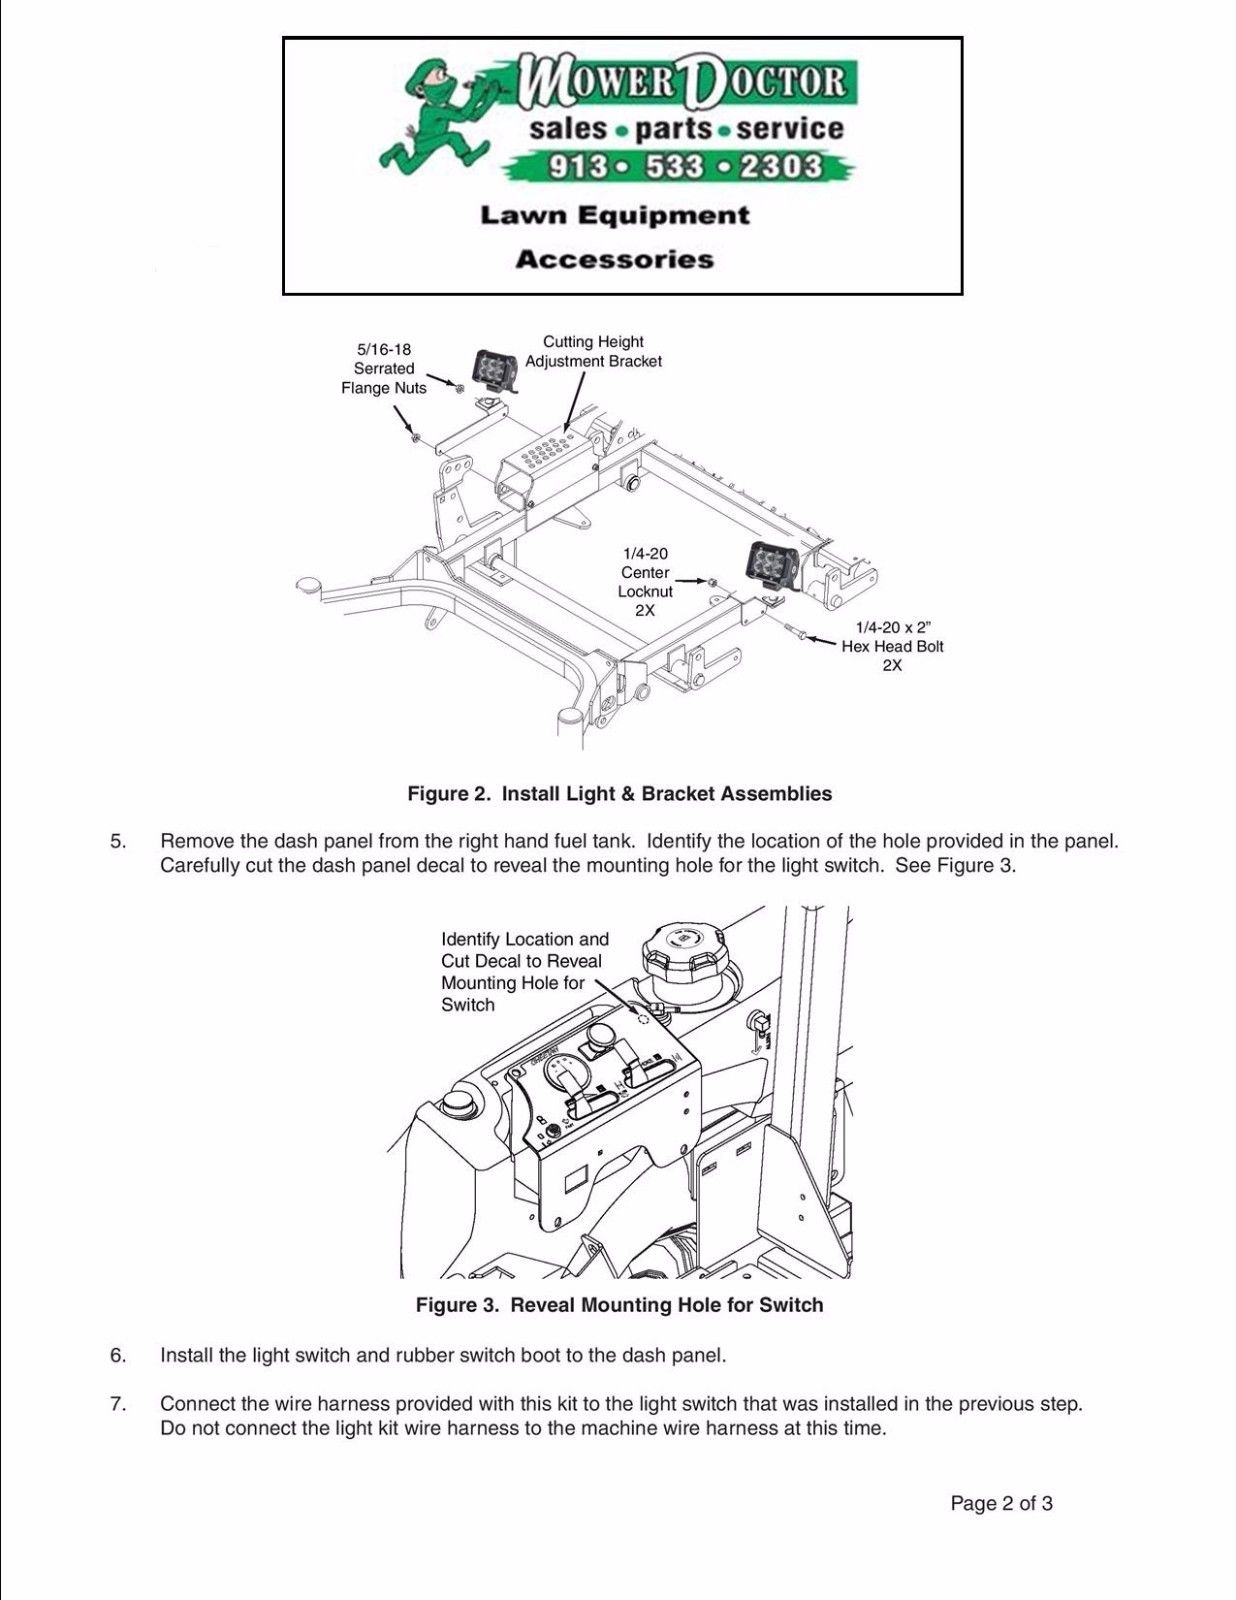 Scag Manuals Wiring Diagrams Repair Scheme Kohler Command Ech730 Efi Diagram Quake Led Harness